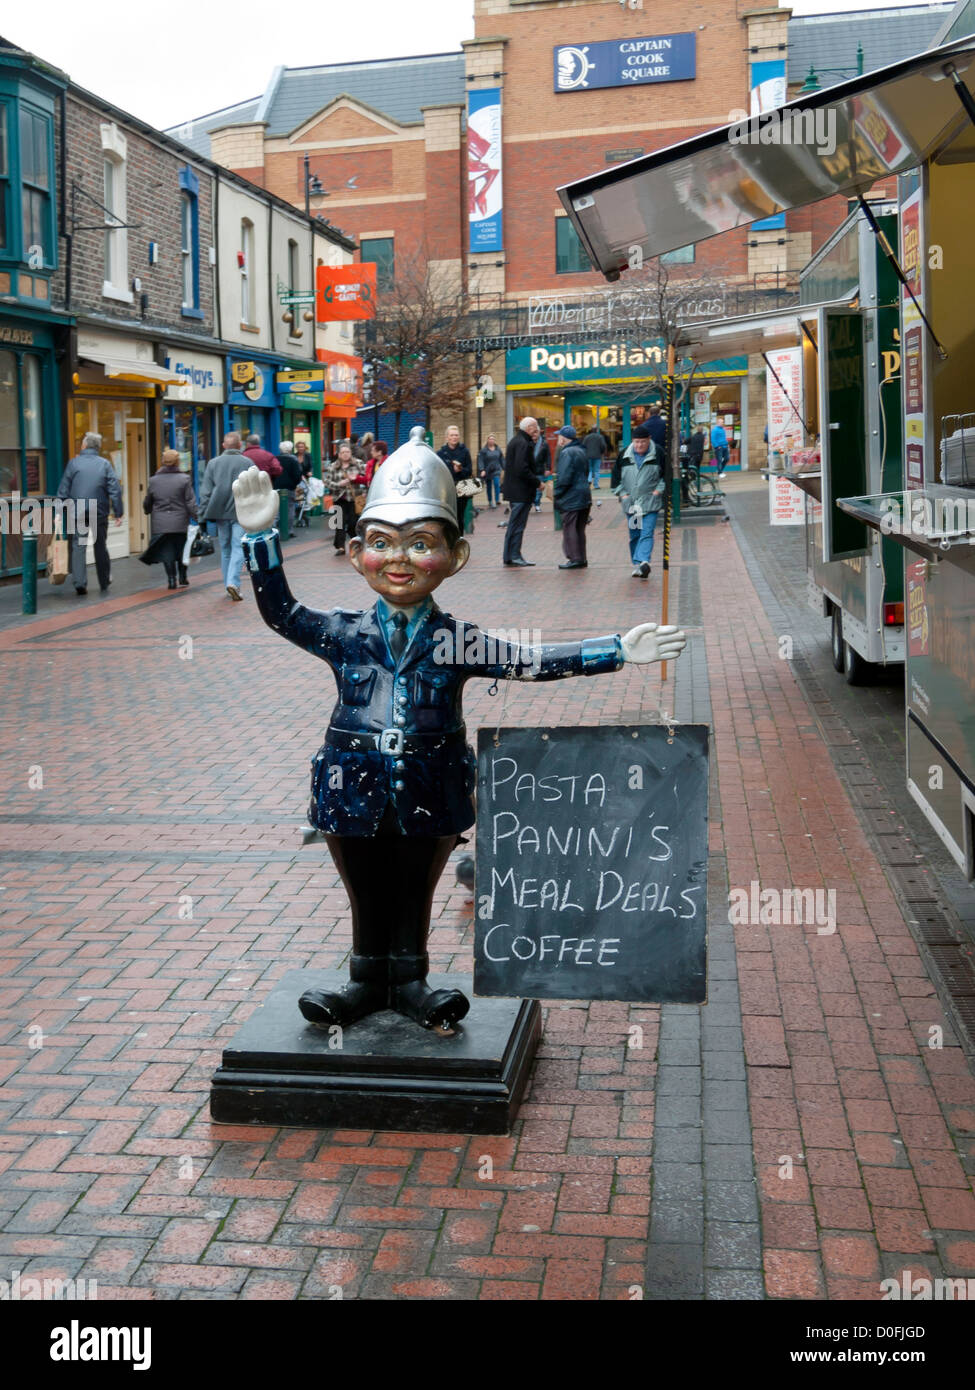 Manikin Policeman advertising a food stall Captain Cook Square shopping centre in Middlesbrough town centre - Stock Image